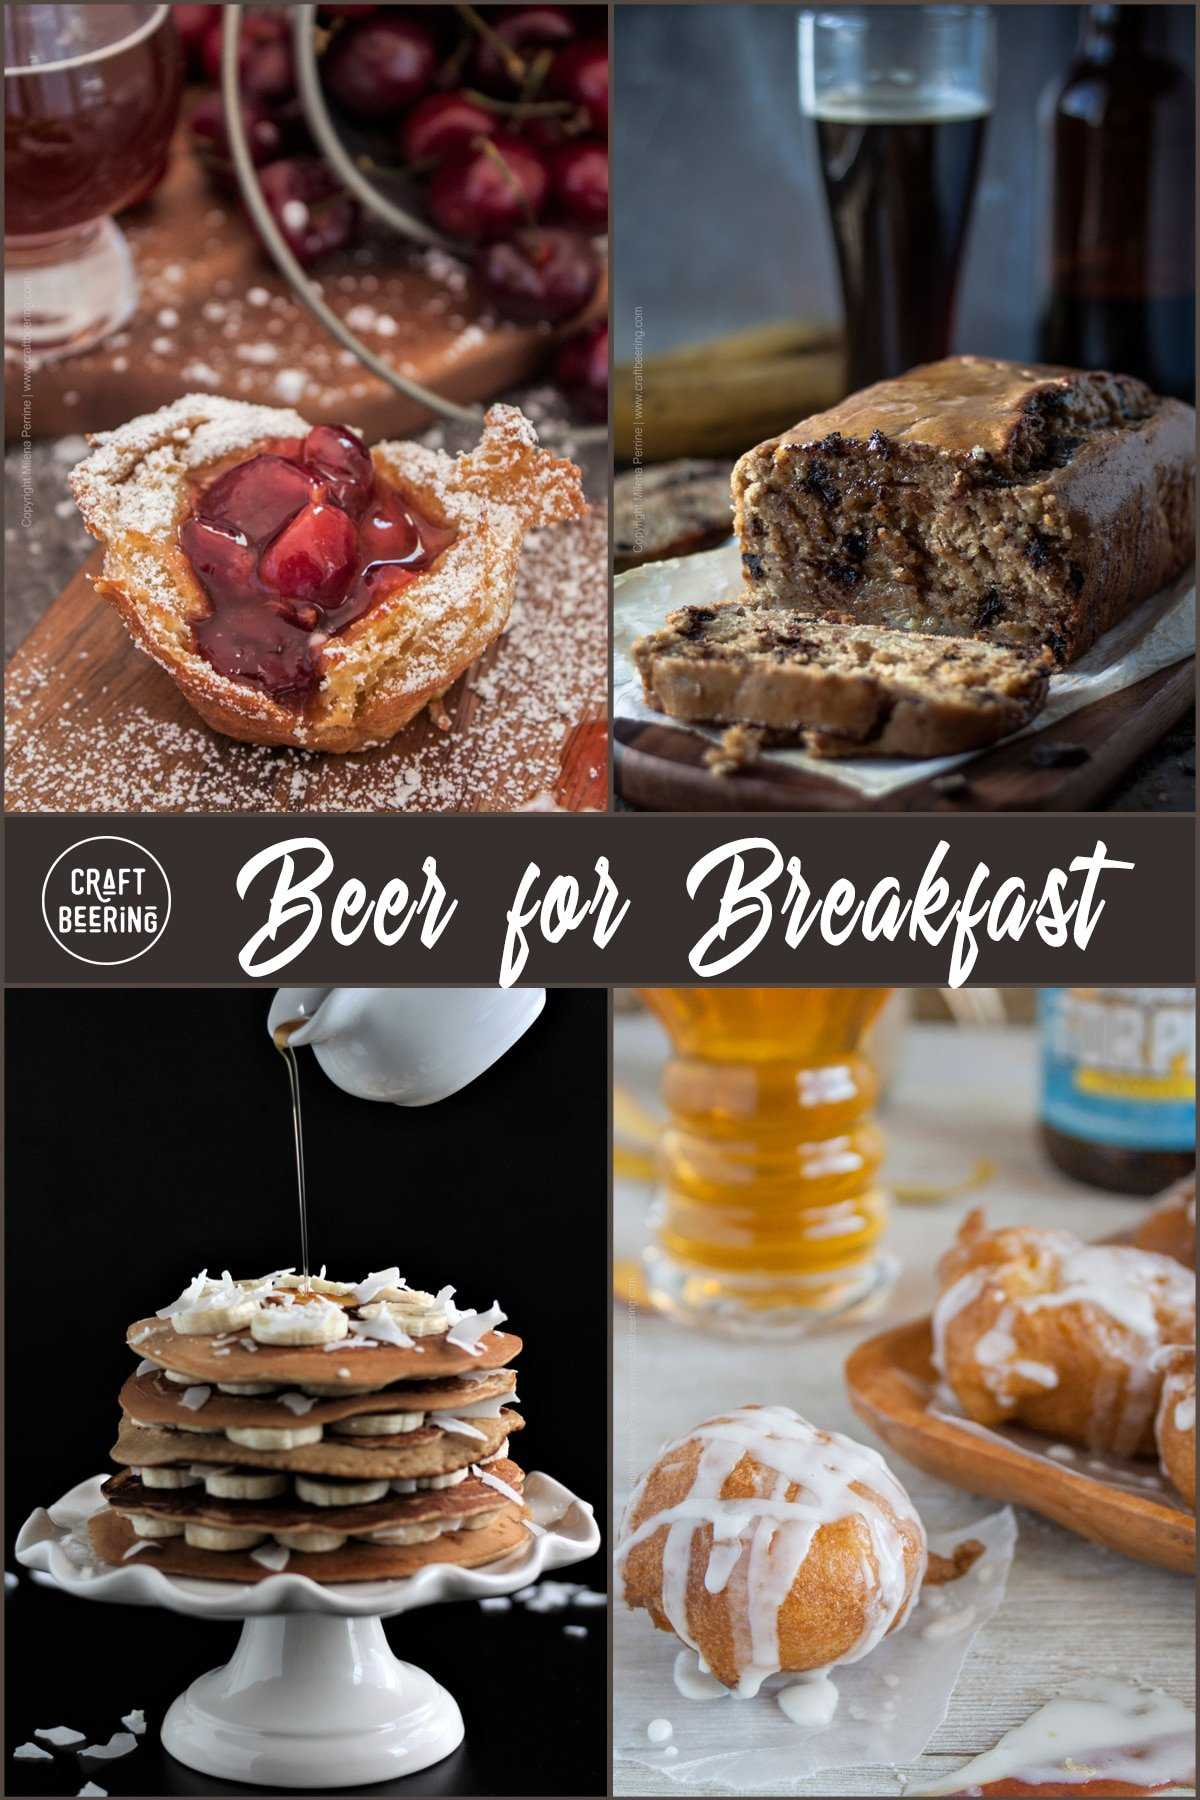 Beer for Breakfast | Collection of breakfast recipes featuring craft beer as ingredient. From IPA mango fritters to Dunkelweizen banana bread with choc chips. Delicious stuff!